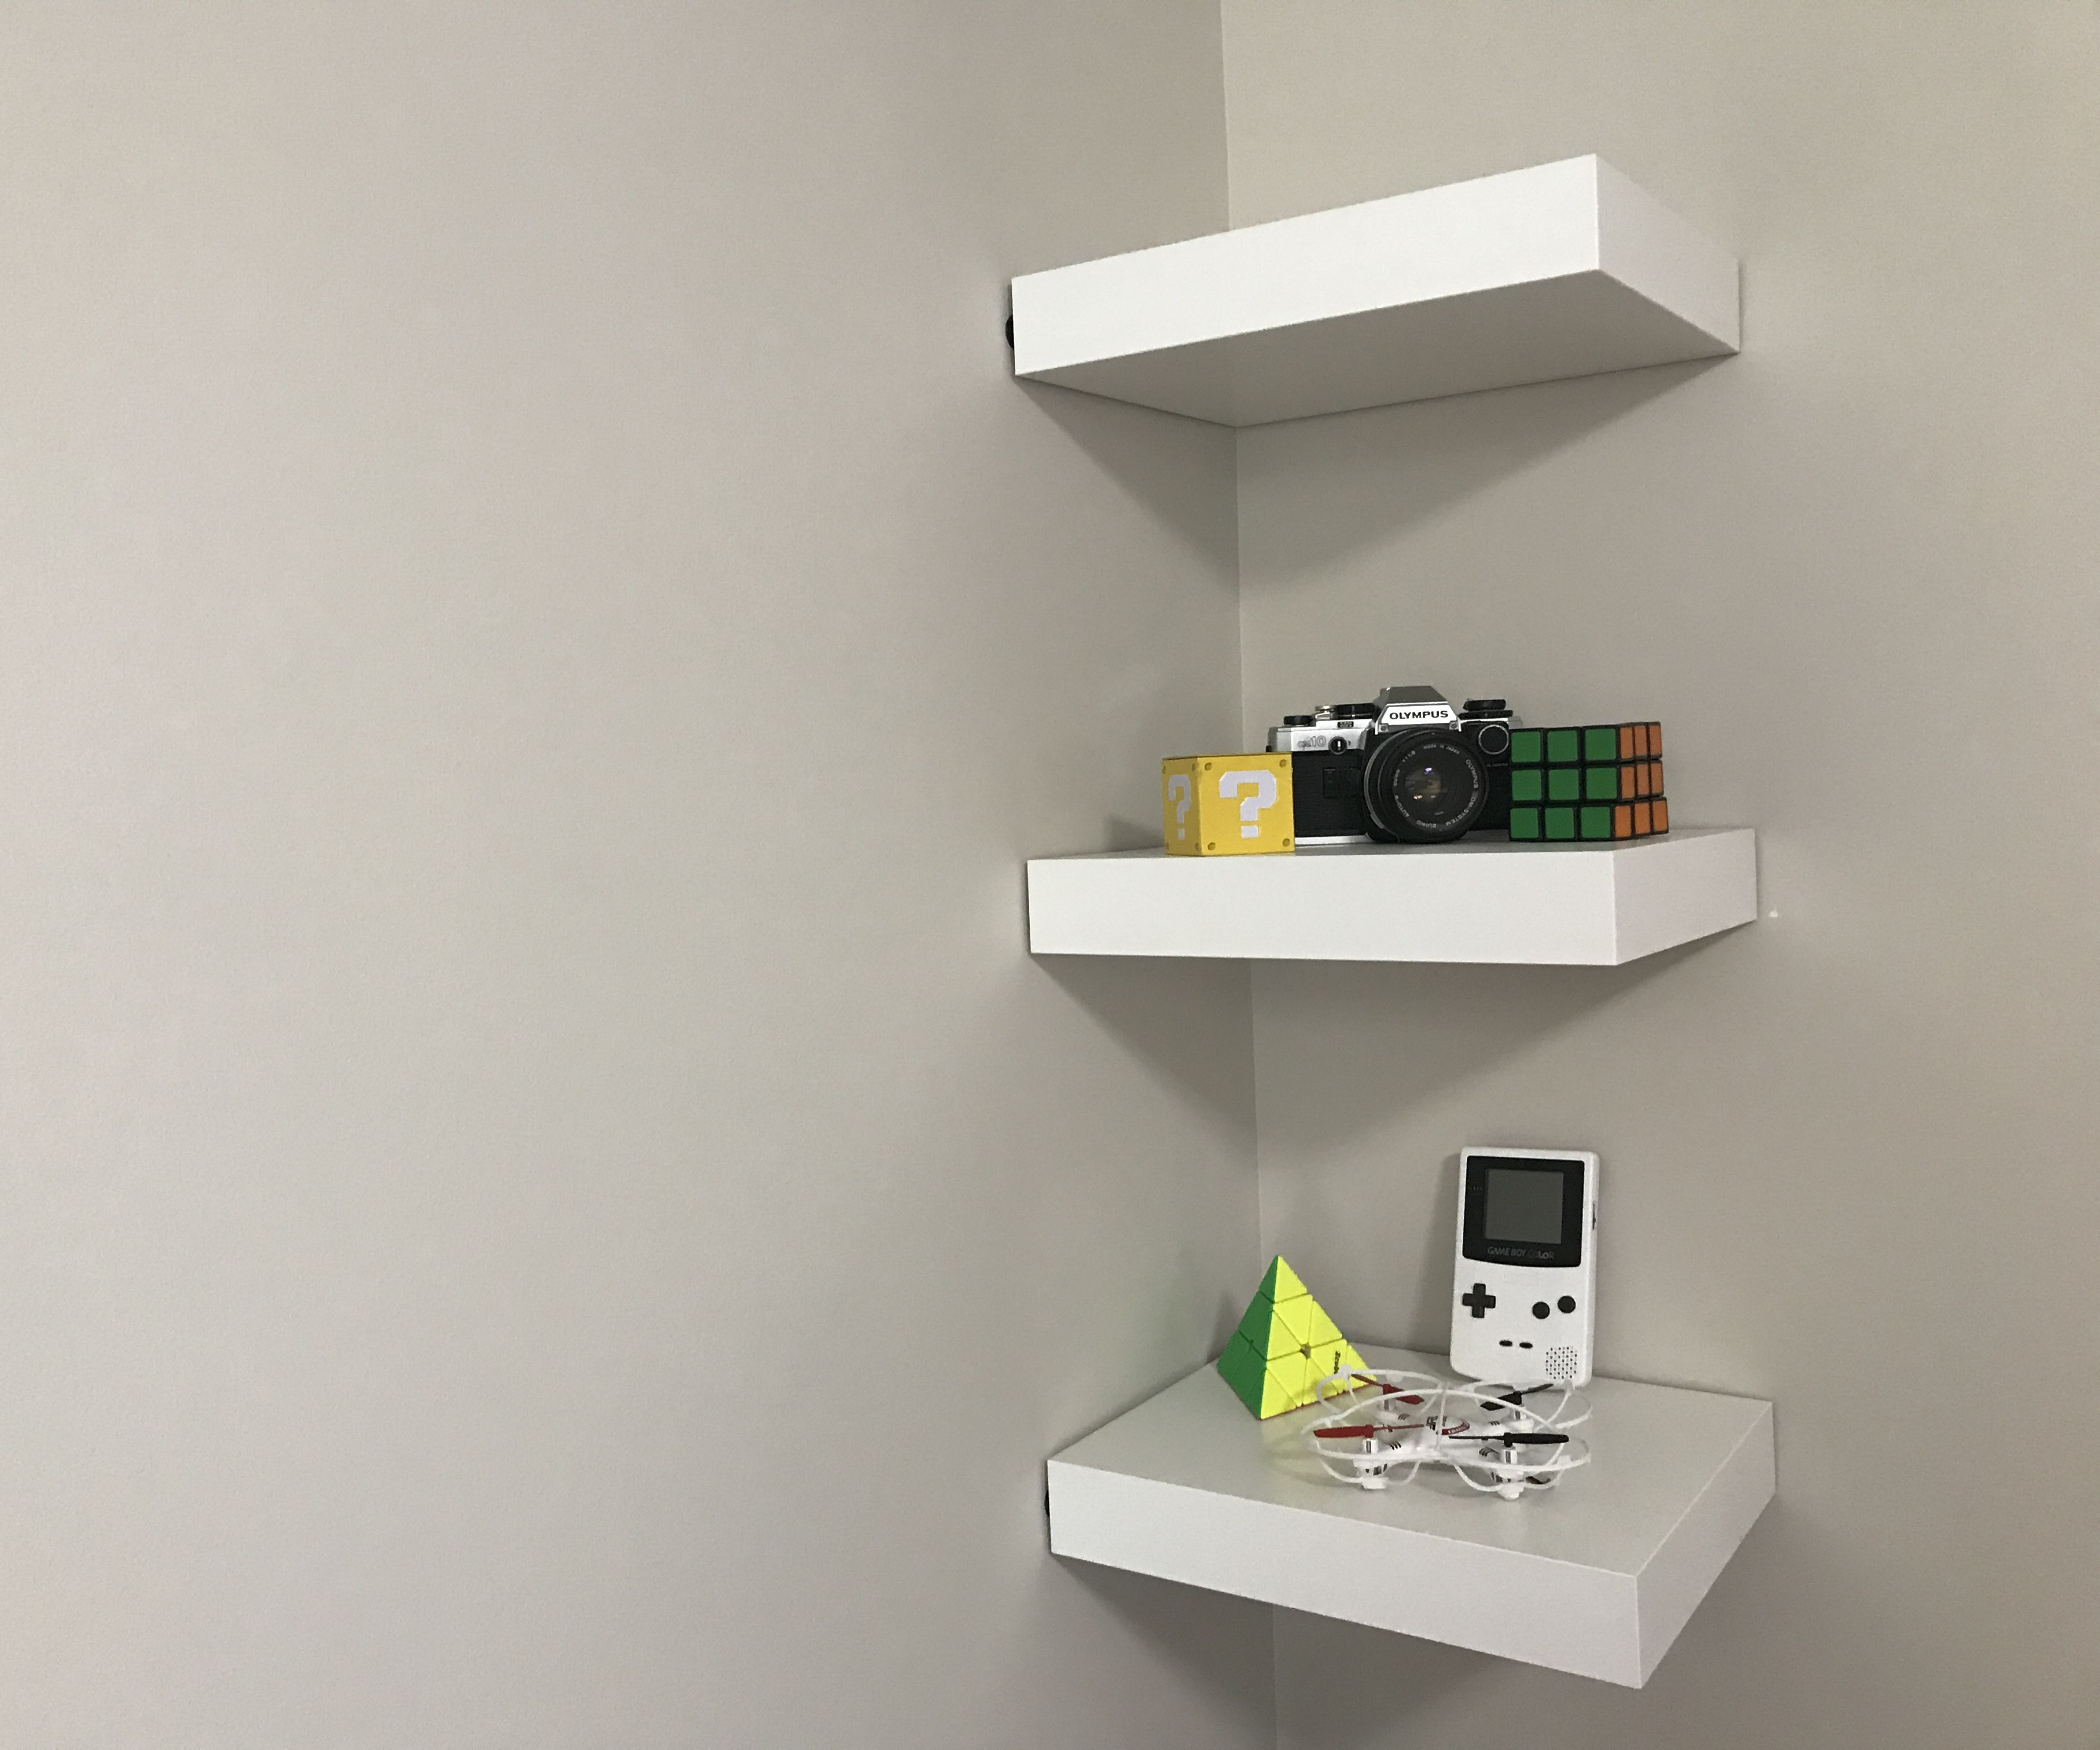 Ikea Lack Shelf Without Drilling Or Nails 6 Steps With